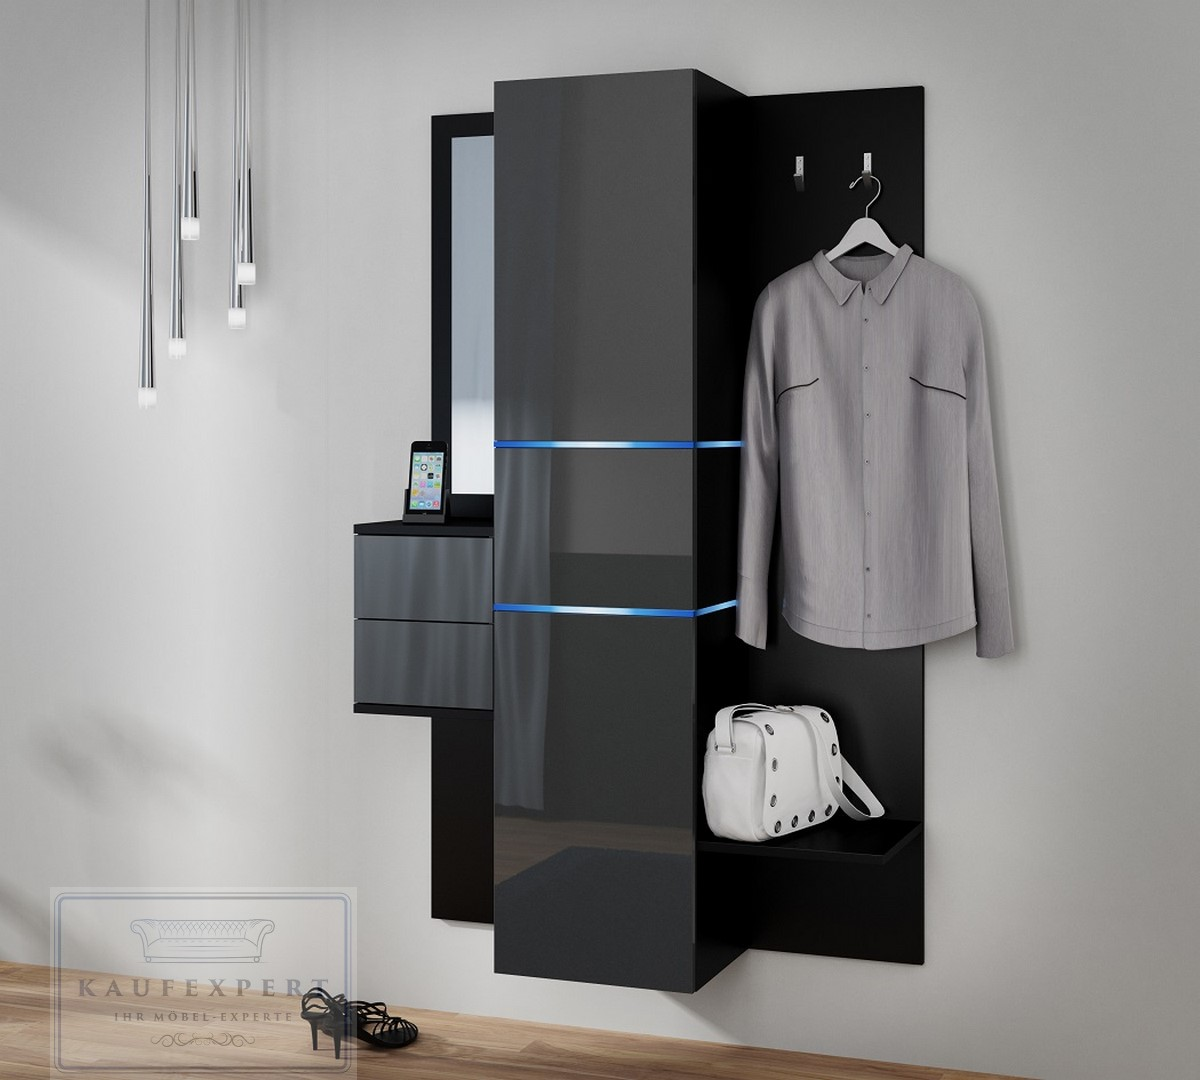 kaufexpert garderobe camino grau hochglanz schwarz mit. Black Bedroom Furniture Sets. Home Design Ideas